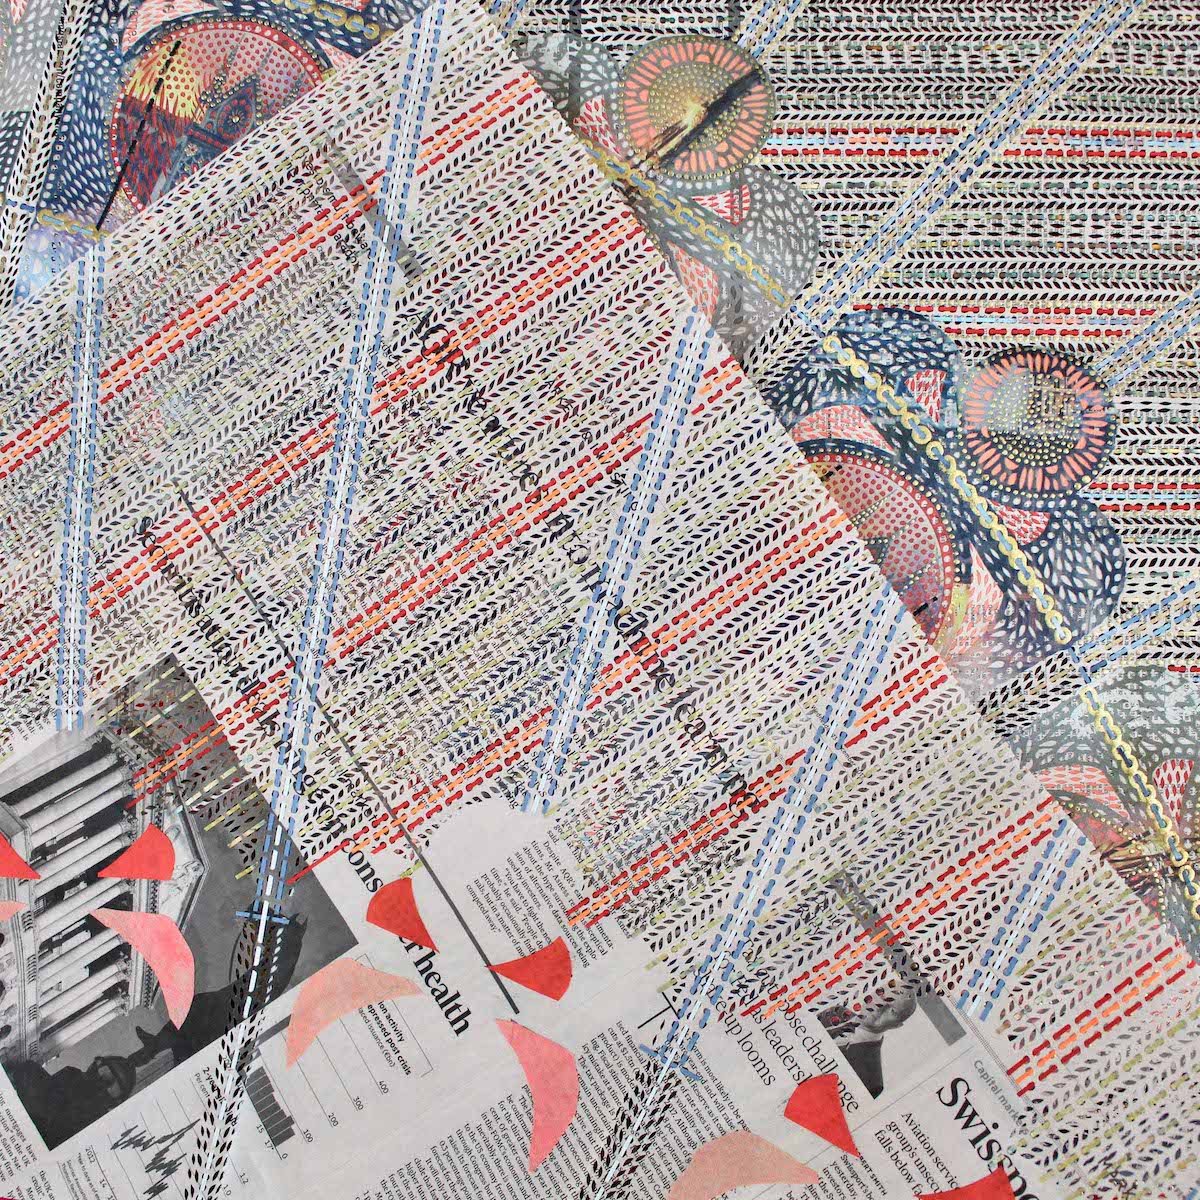 Up Close View of Newspaper Collage Artwork by Myriam Dion